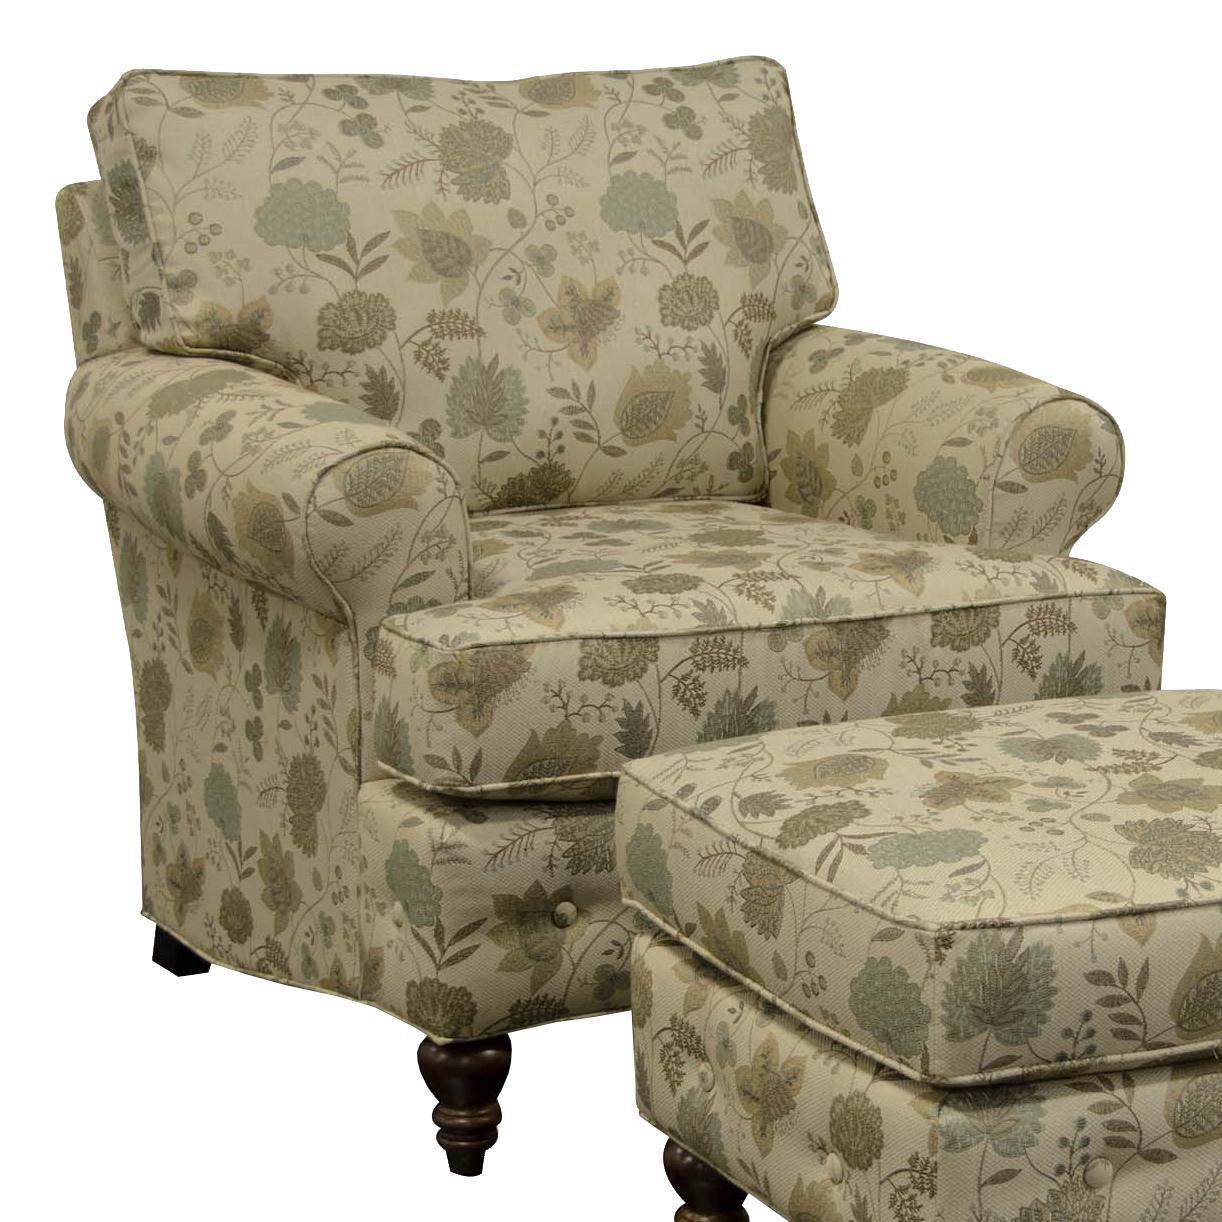 England Evans Living Room Chair - Item Number: 8484 Claire Wasabi